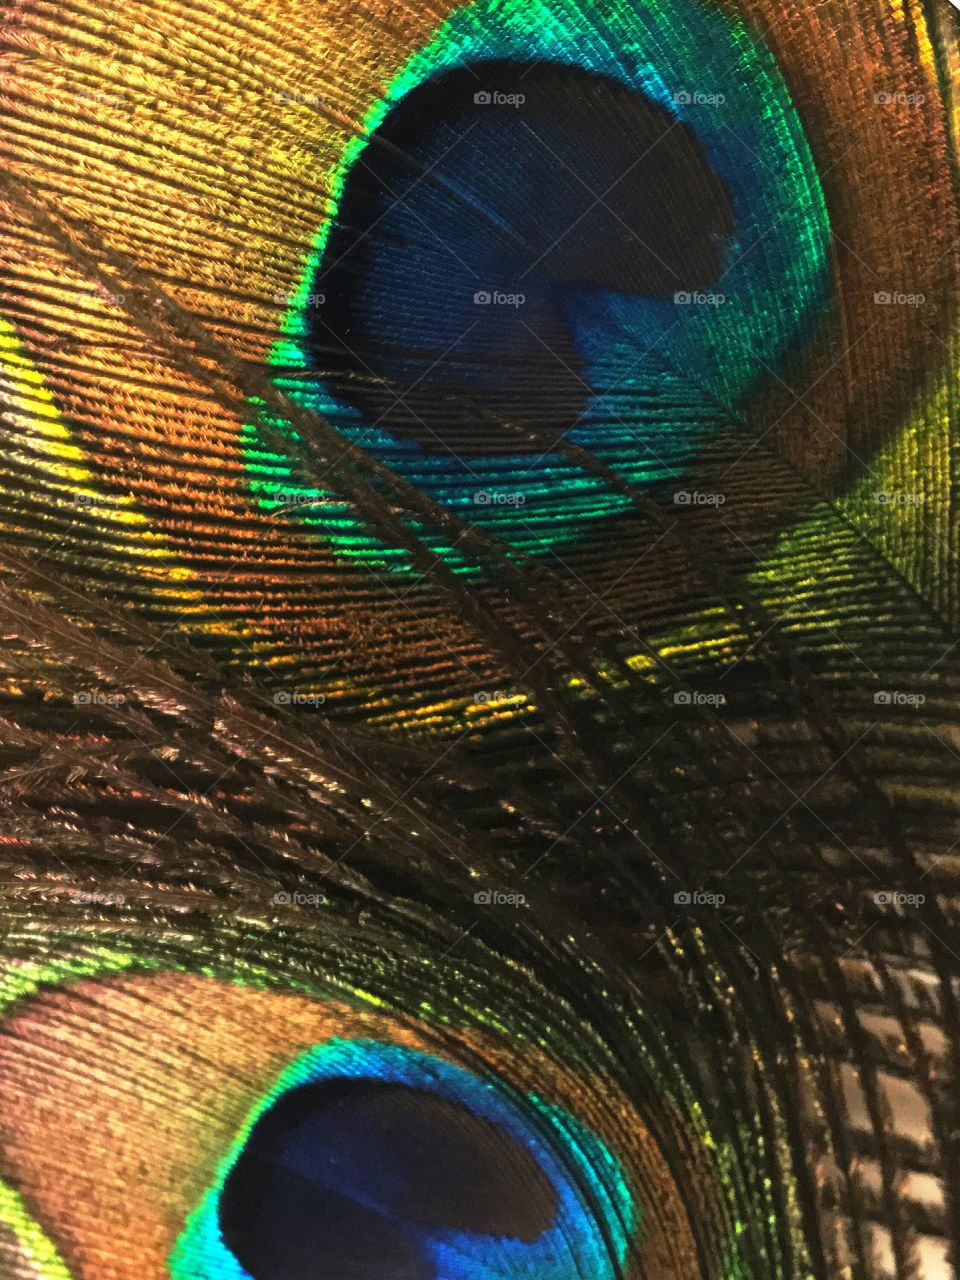 Dream tonight of peacock tails.